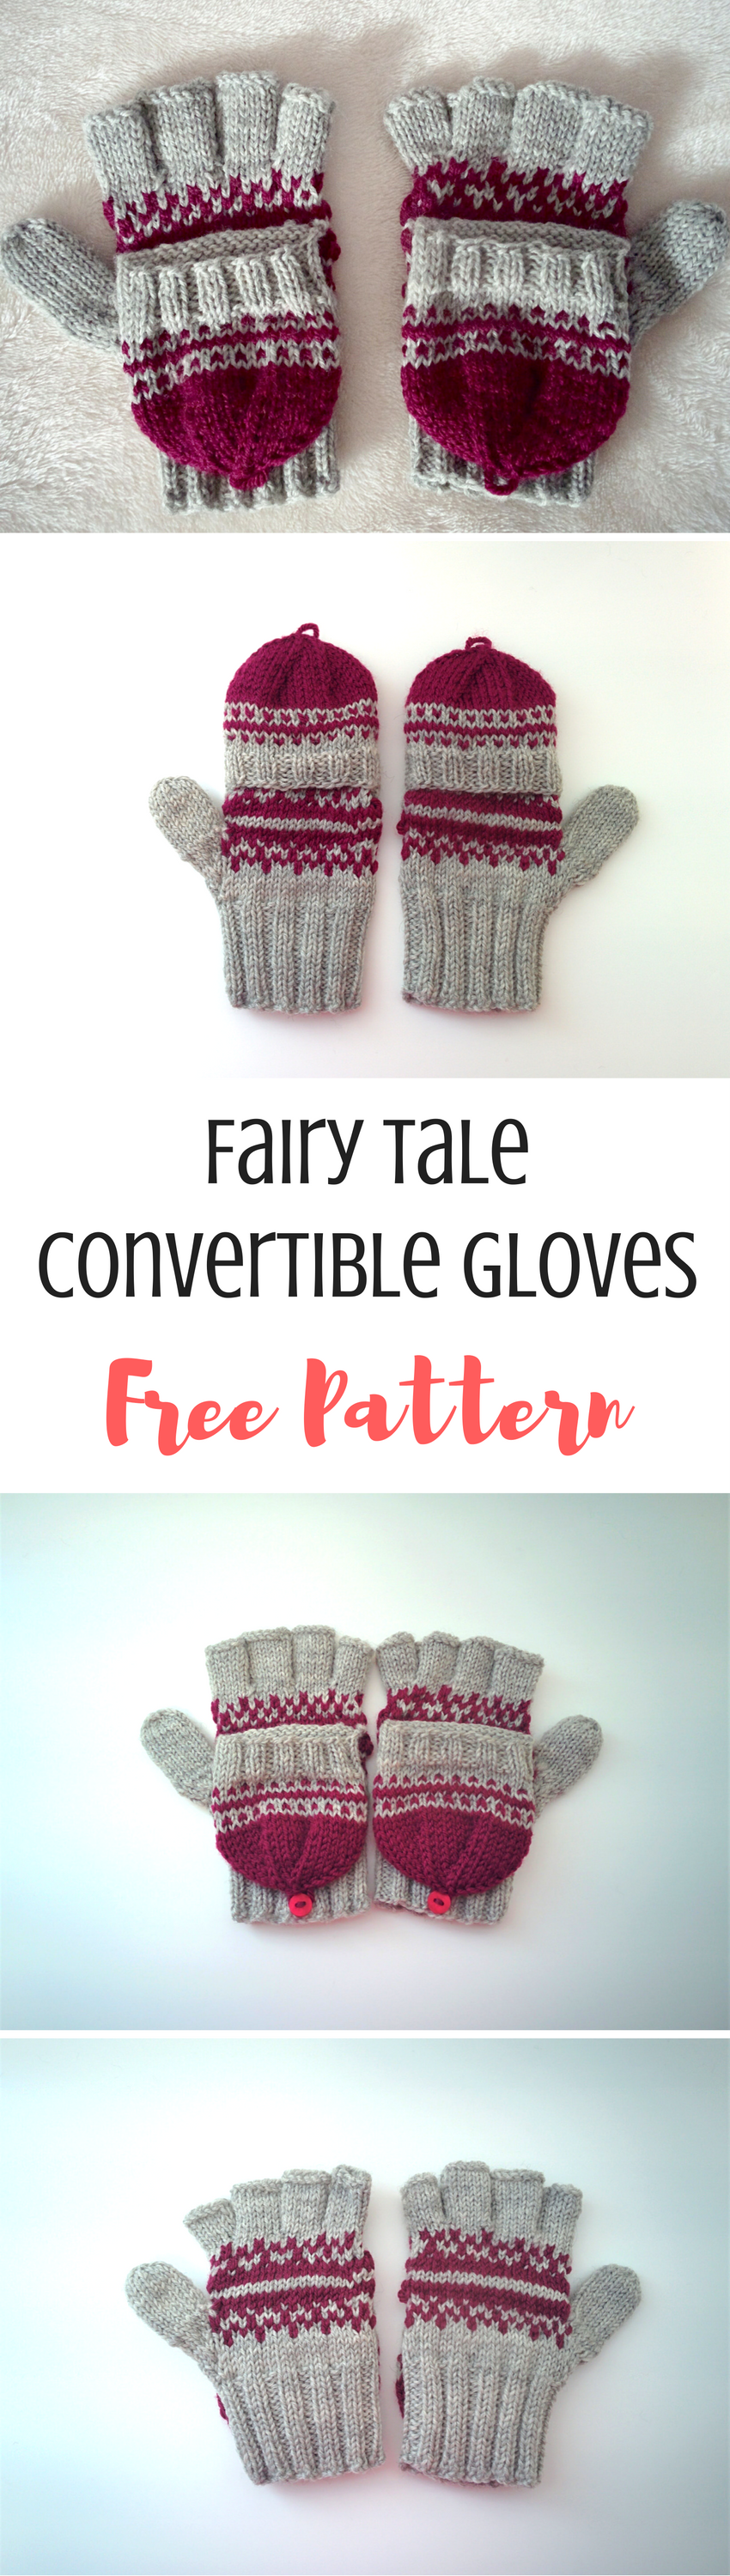 Fairy Tale: Free Convertible Gloves Knitting Pattern | knitting ...